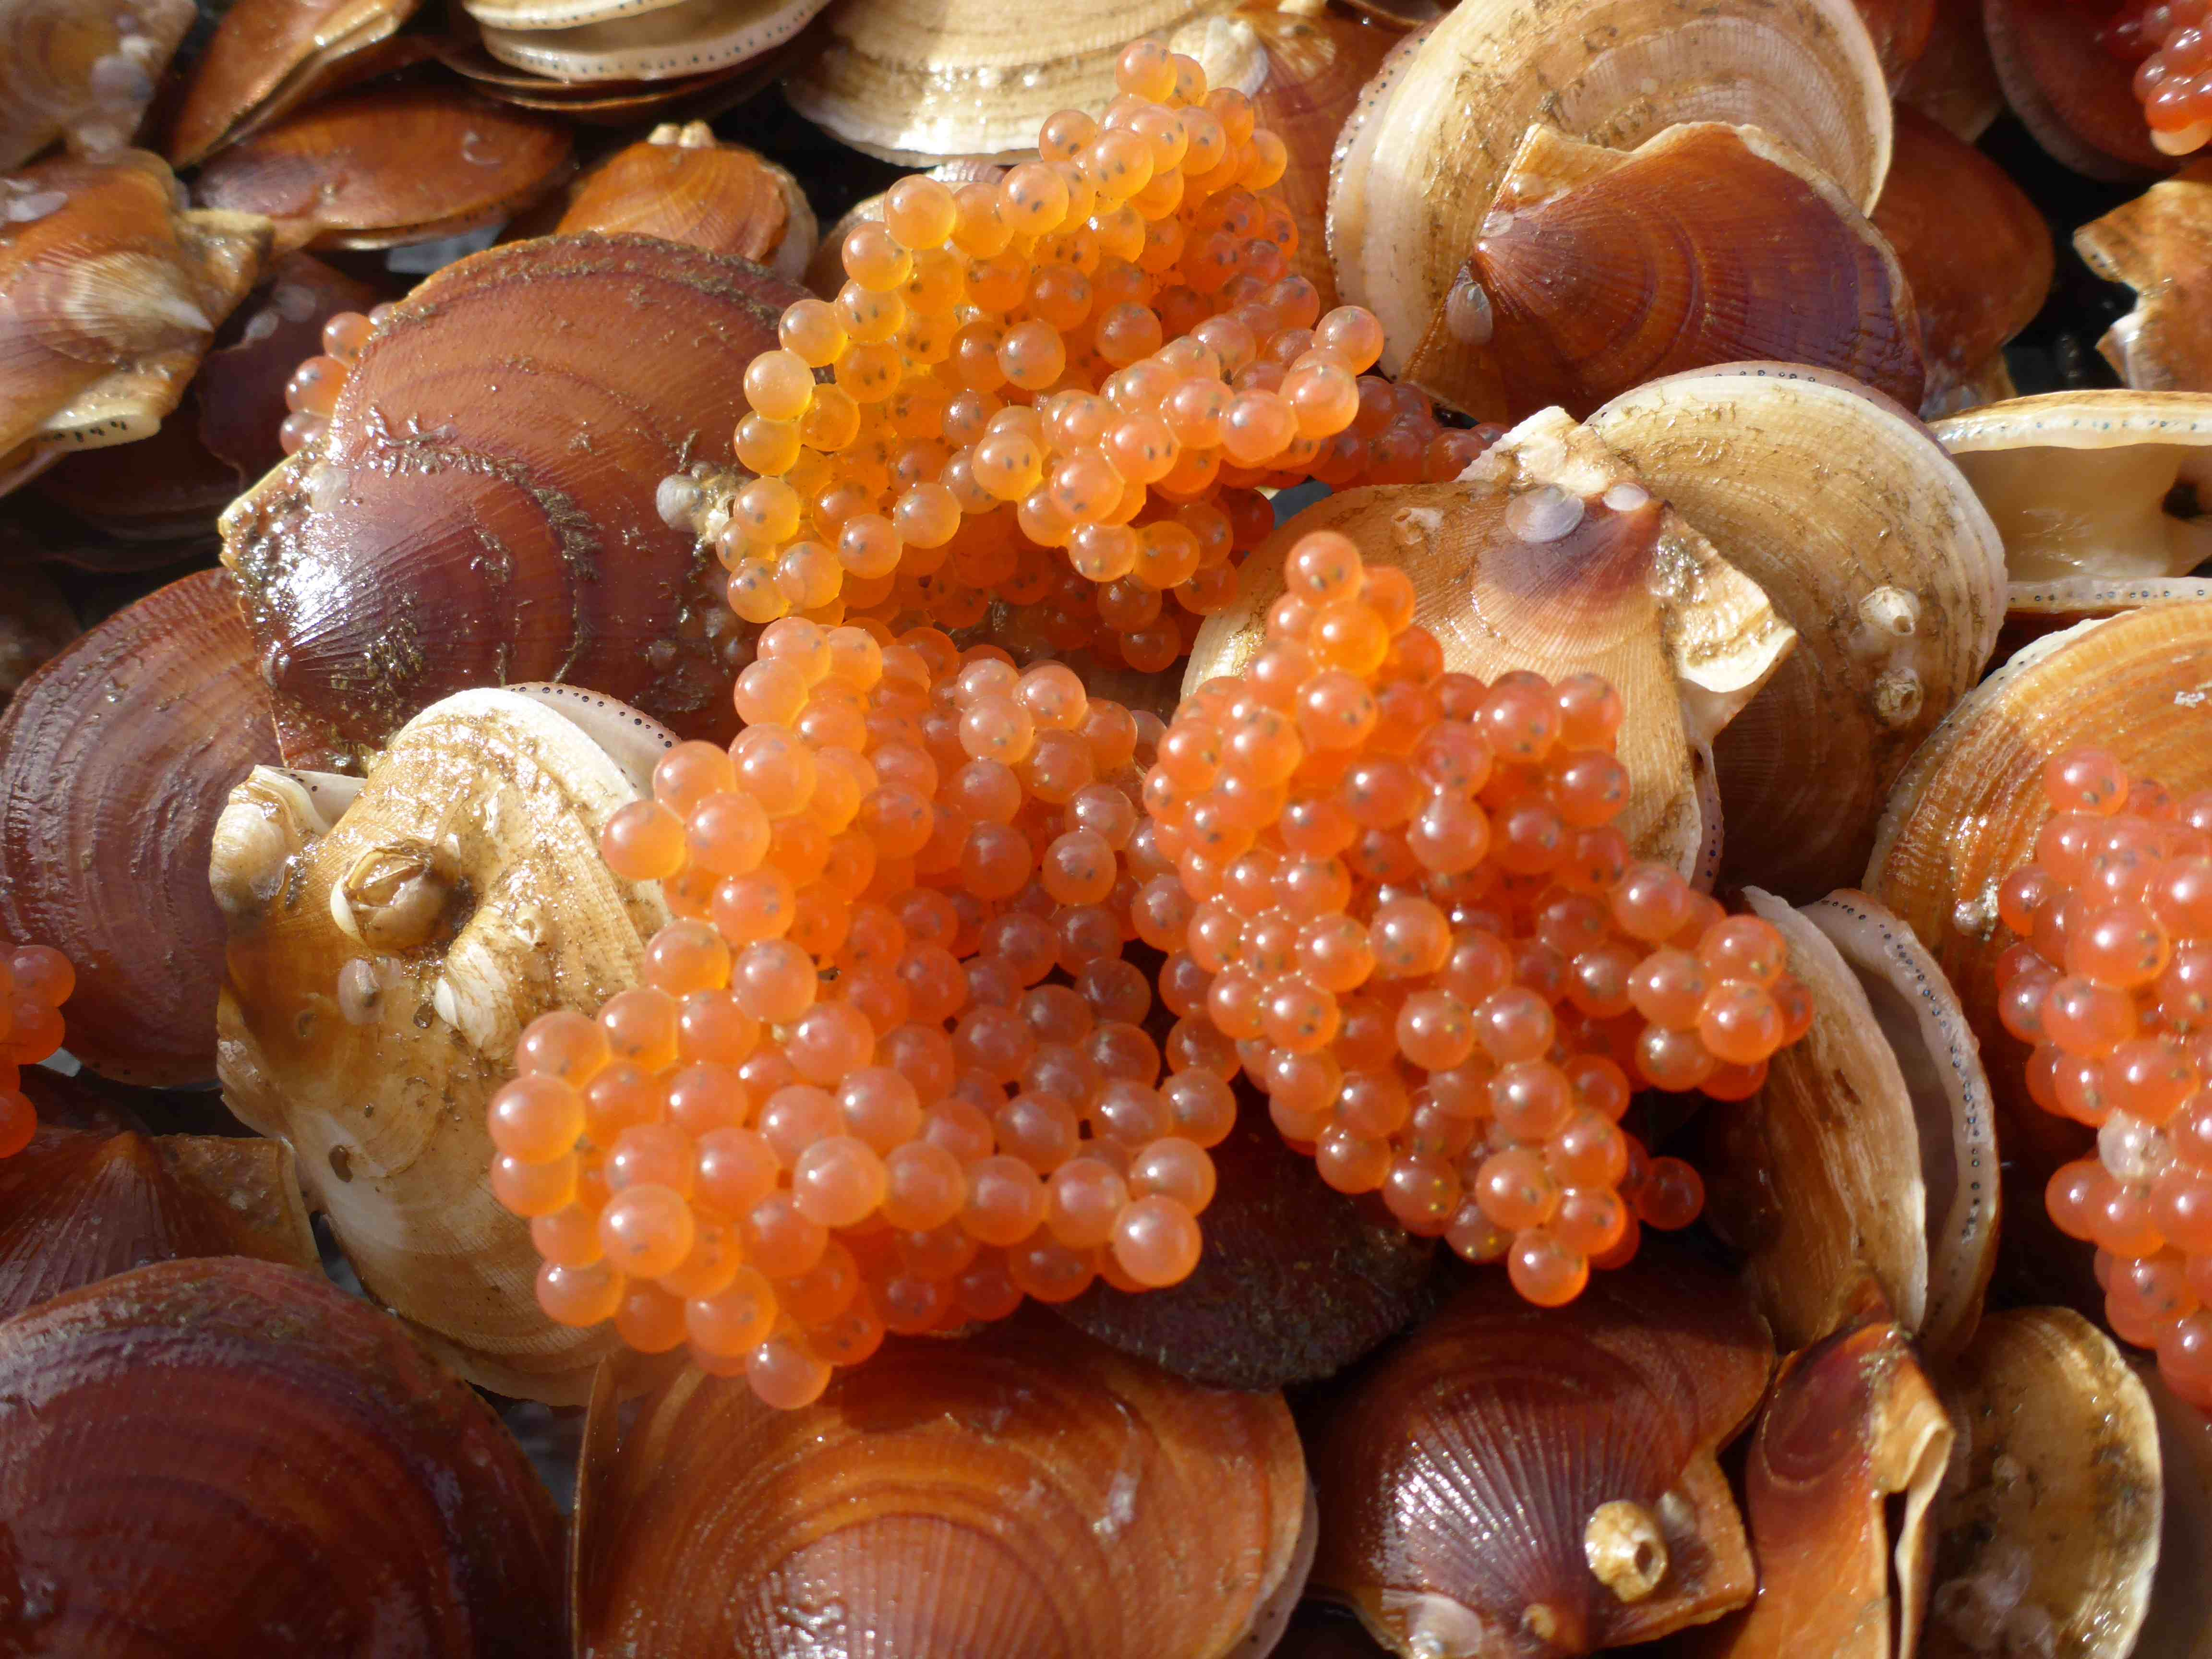 Orange spheres of sculpin eggs on scallops